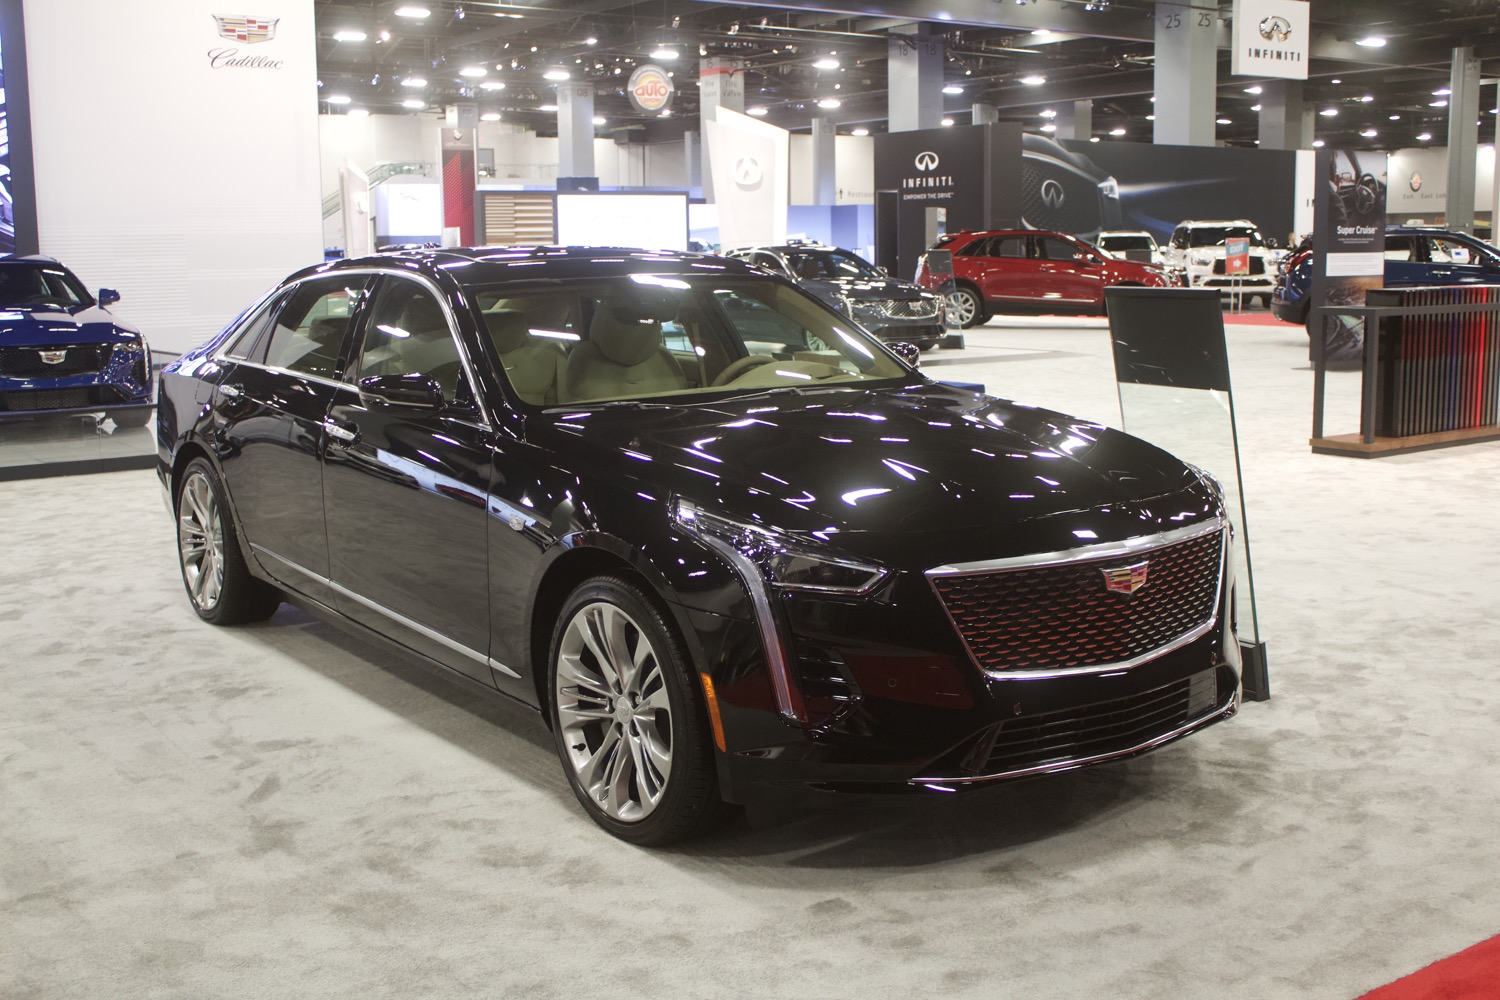 Cadillac Ct6 Residual Values See Steep Declines In May